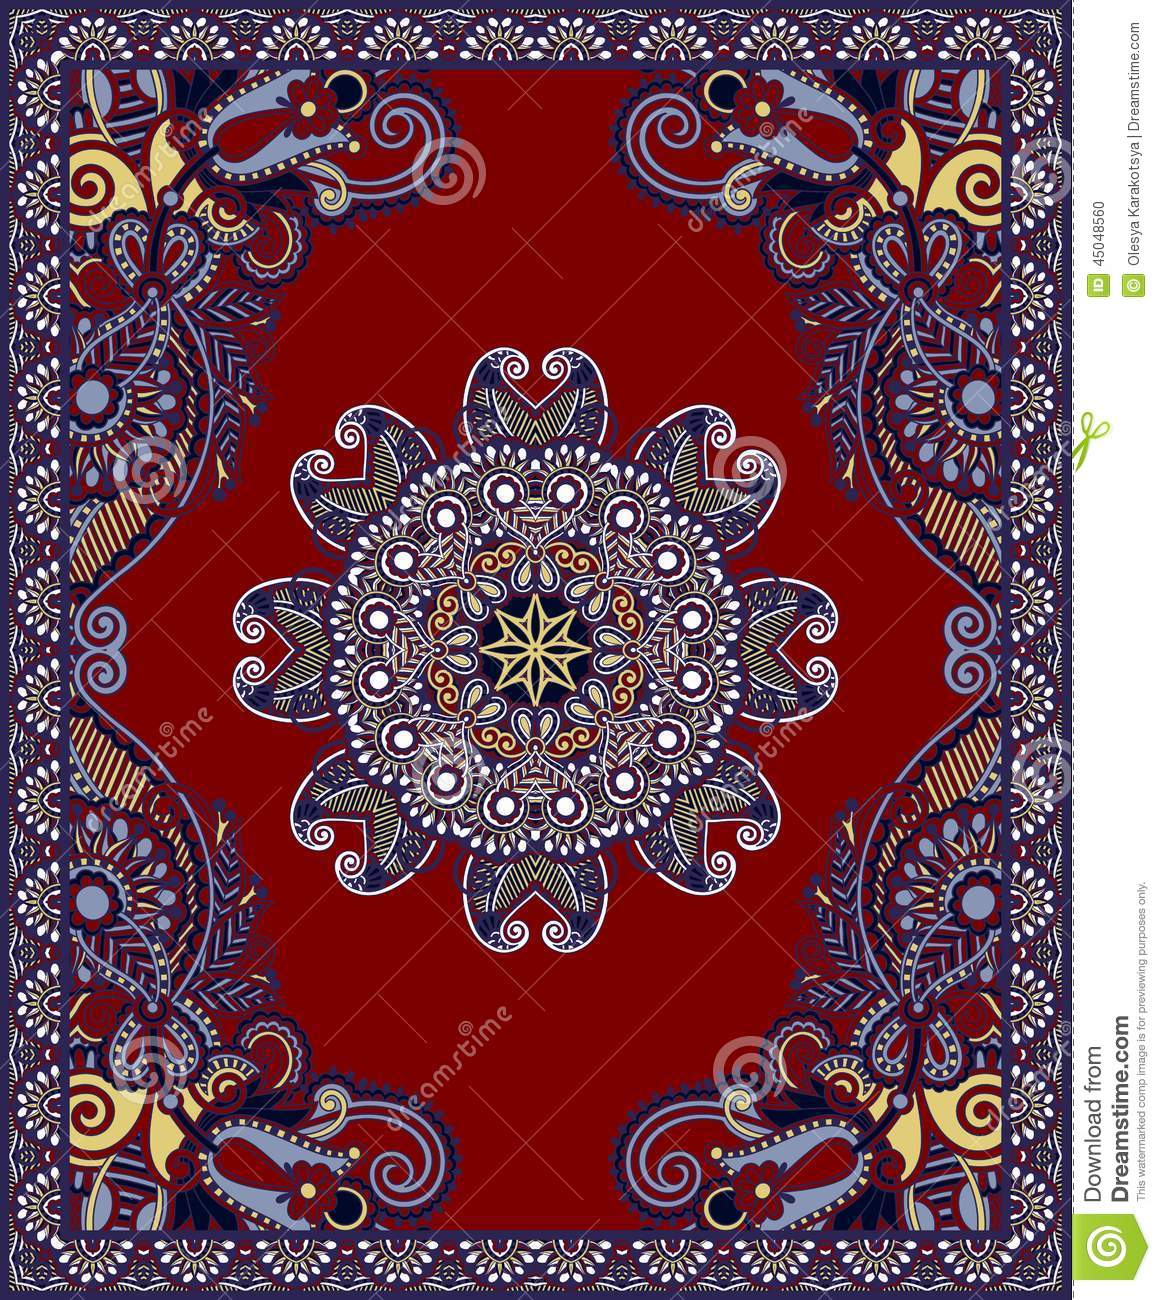 Carpet Design Fascinating Ukrainian Oriental Floral Ornamental Carpet Design Stock Vector . Design Ideas